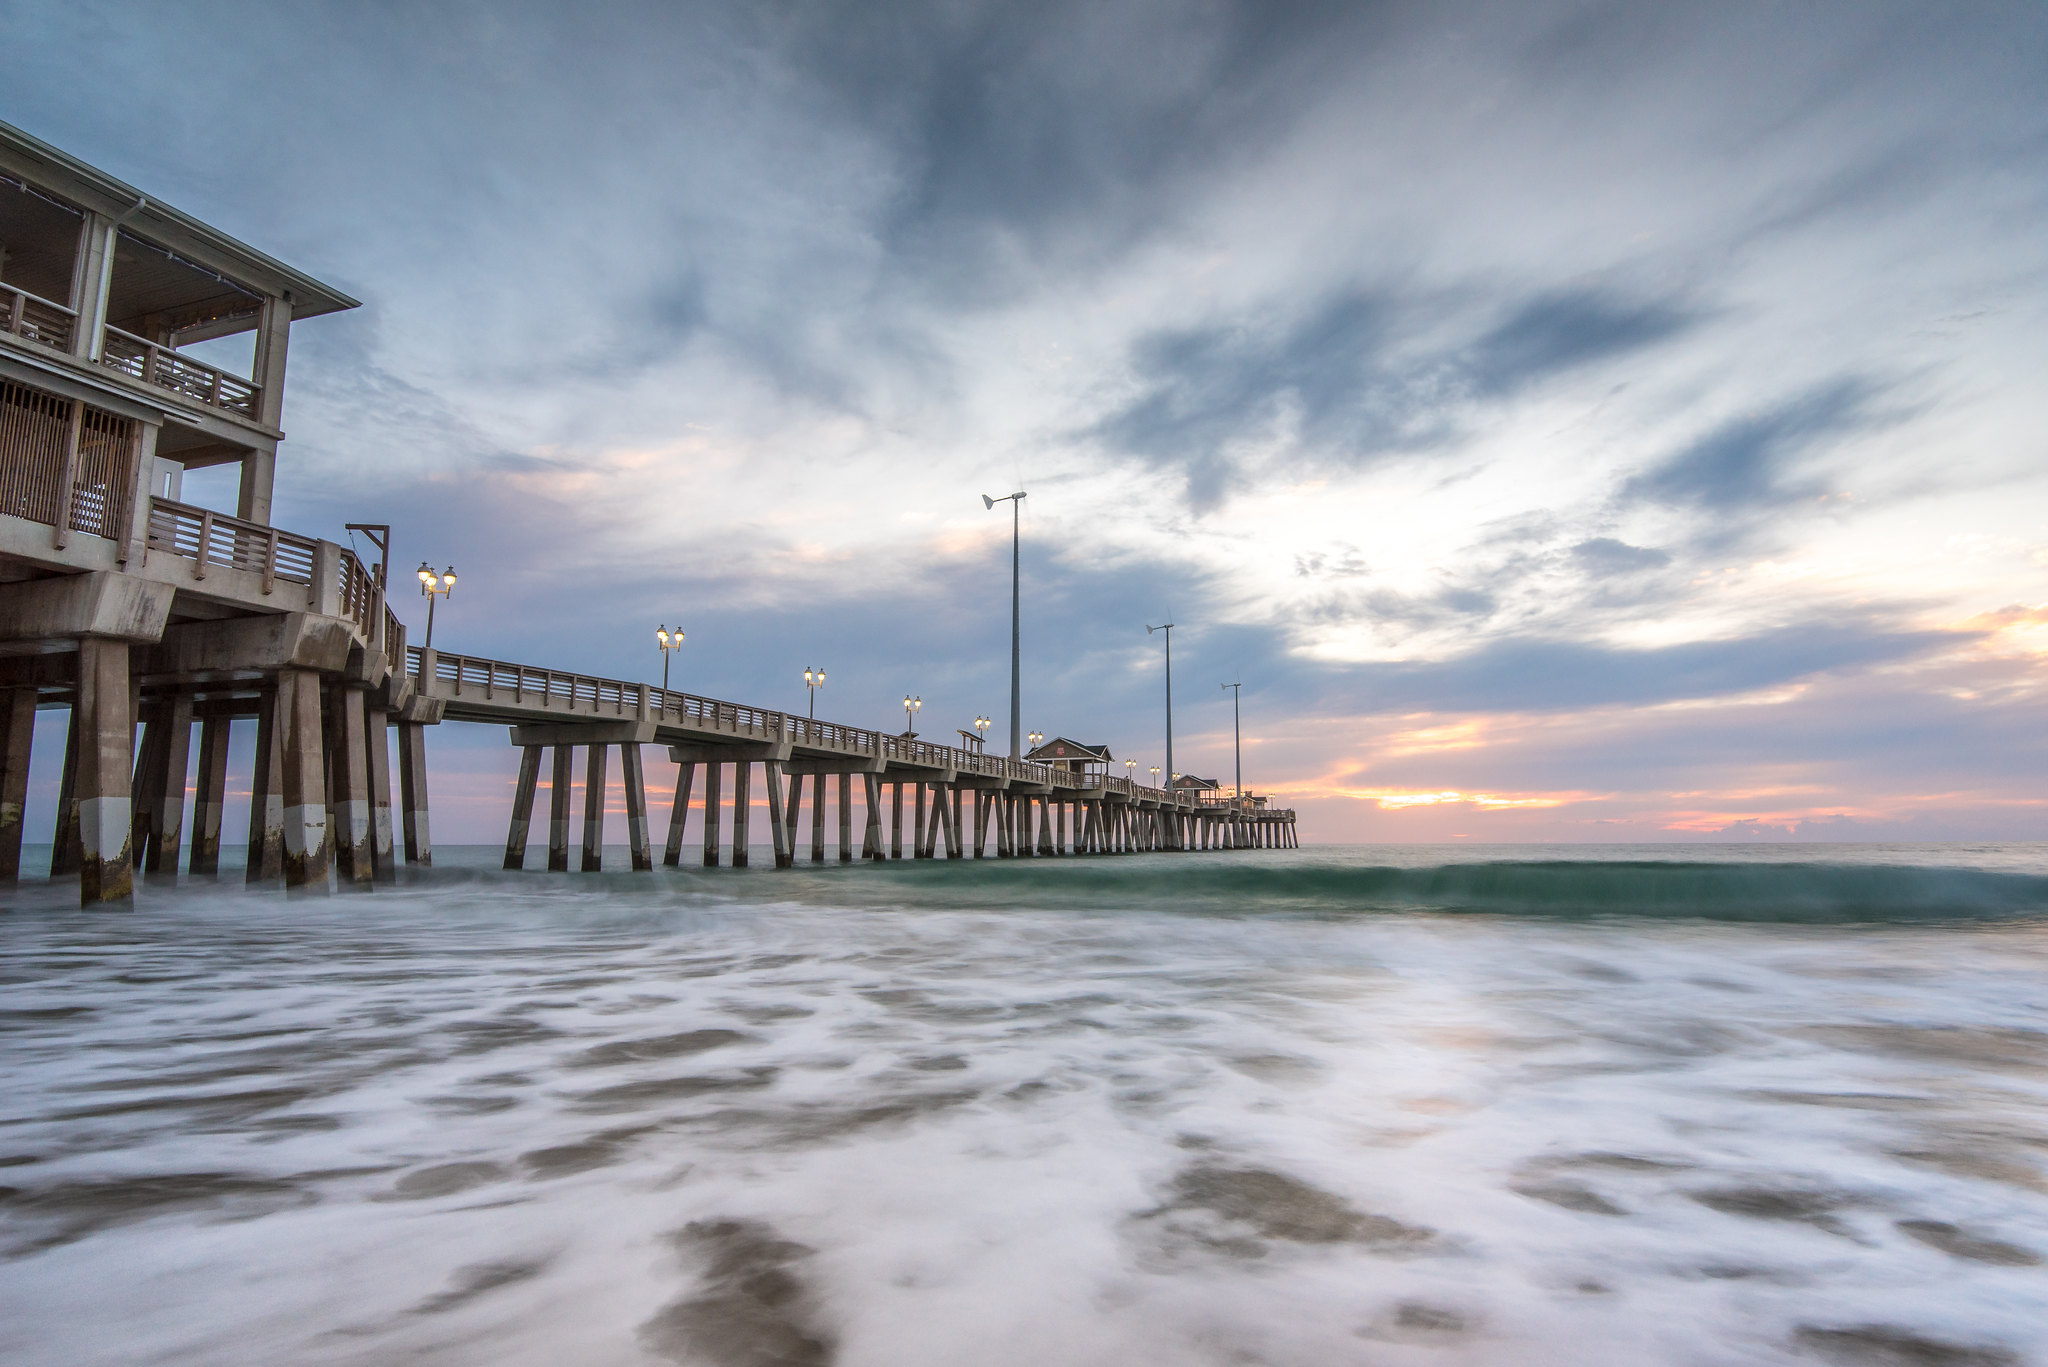 jennette's Pier, North Carolina